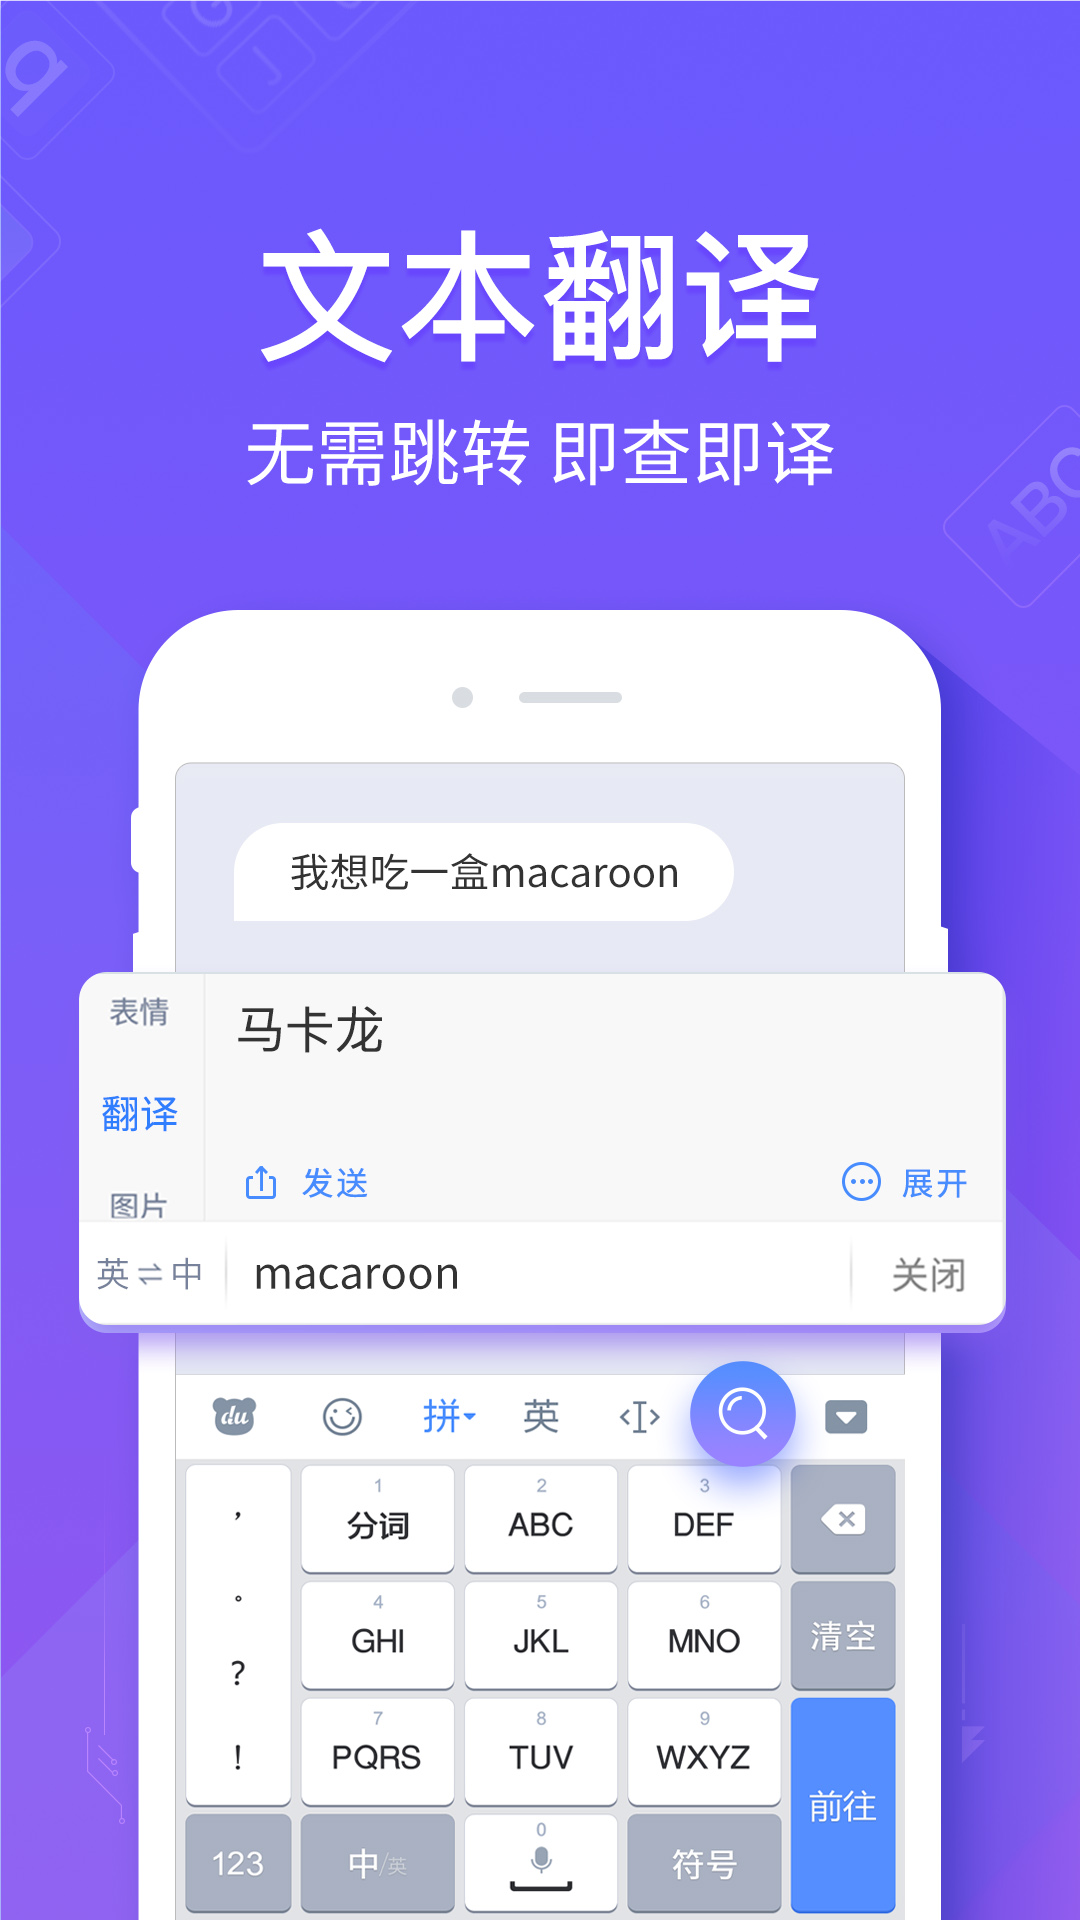 English To Italian Translator Google: Baidu Adds Voice, Text Translation Functions To Its Input